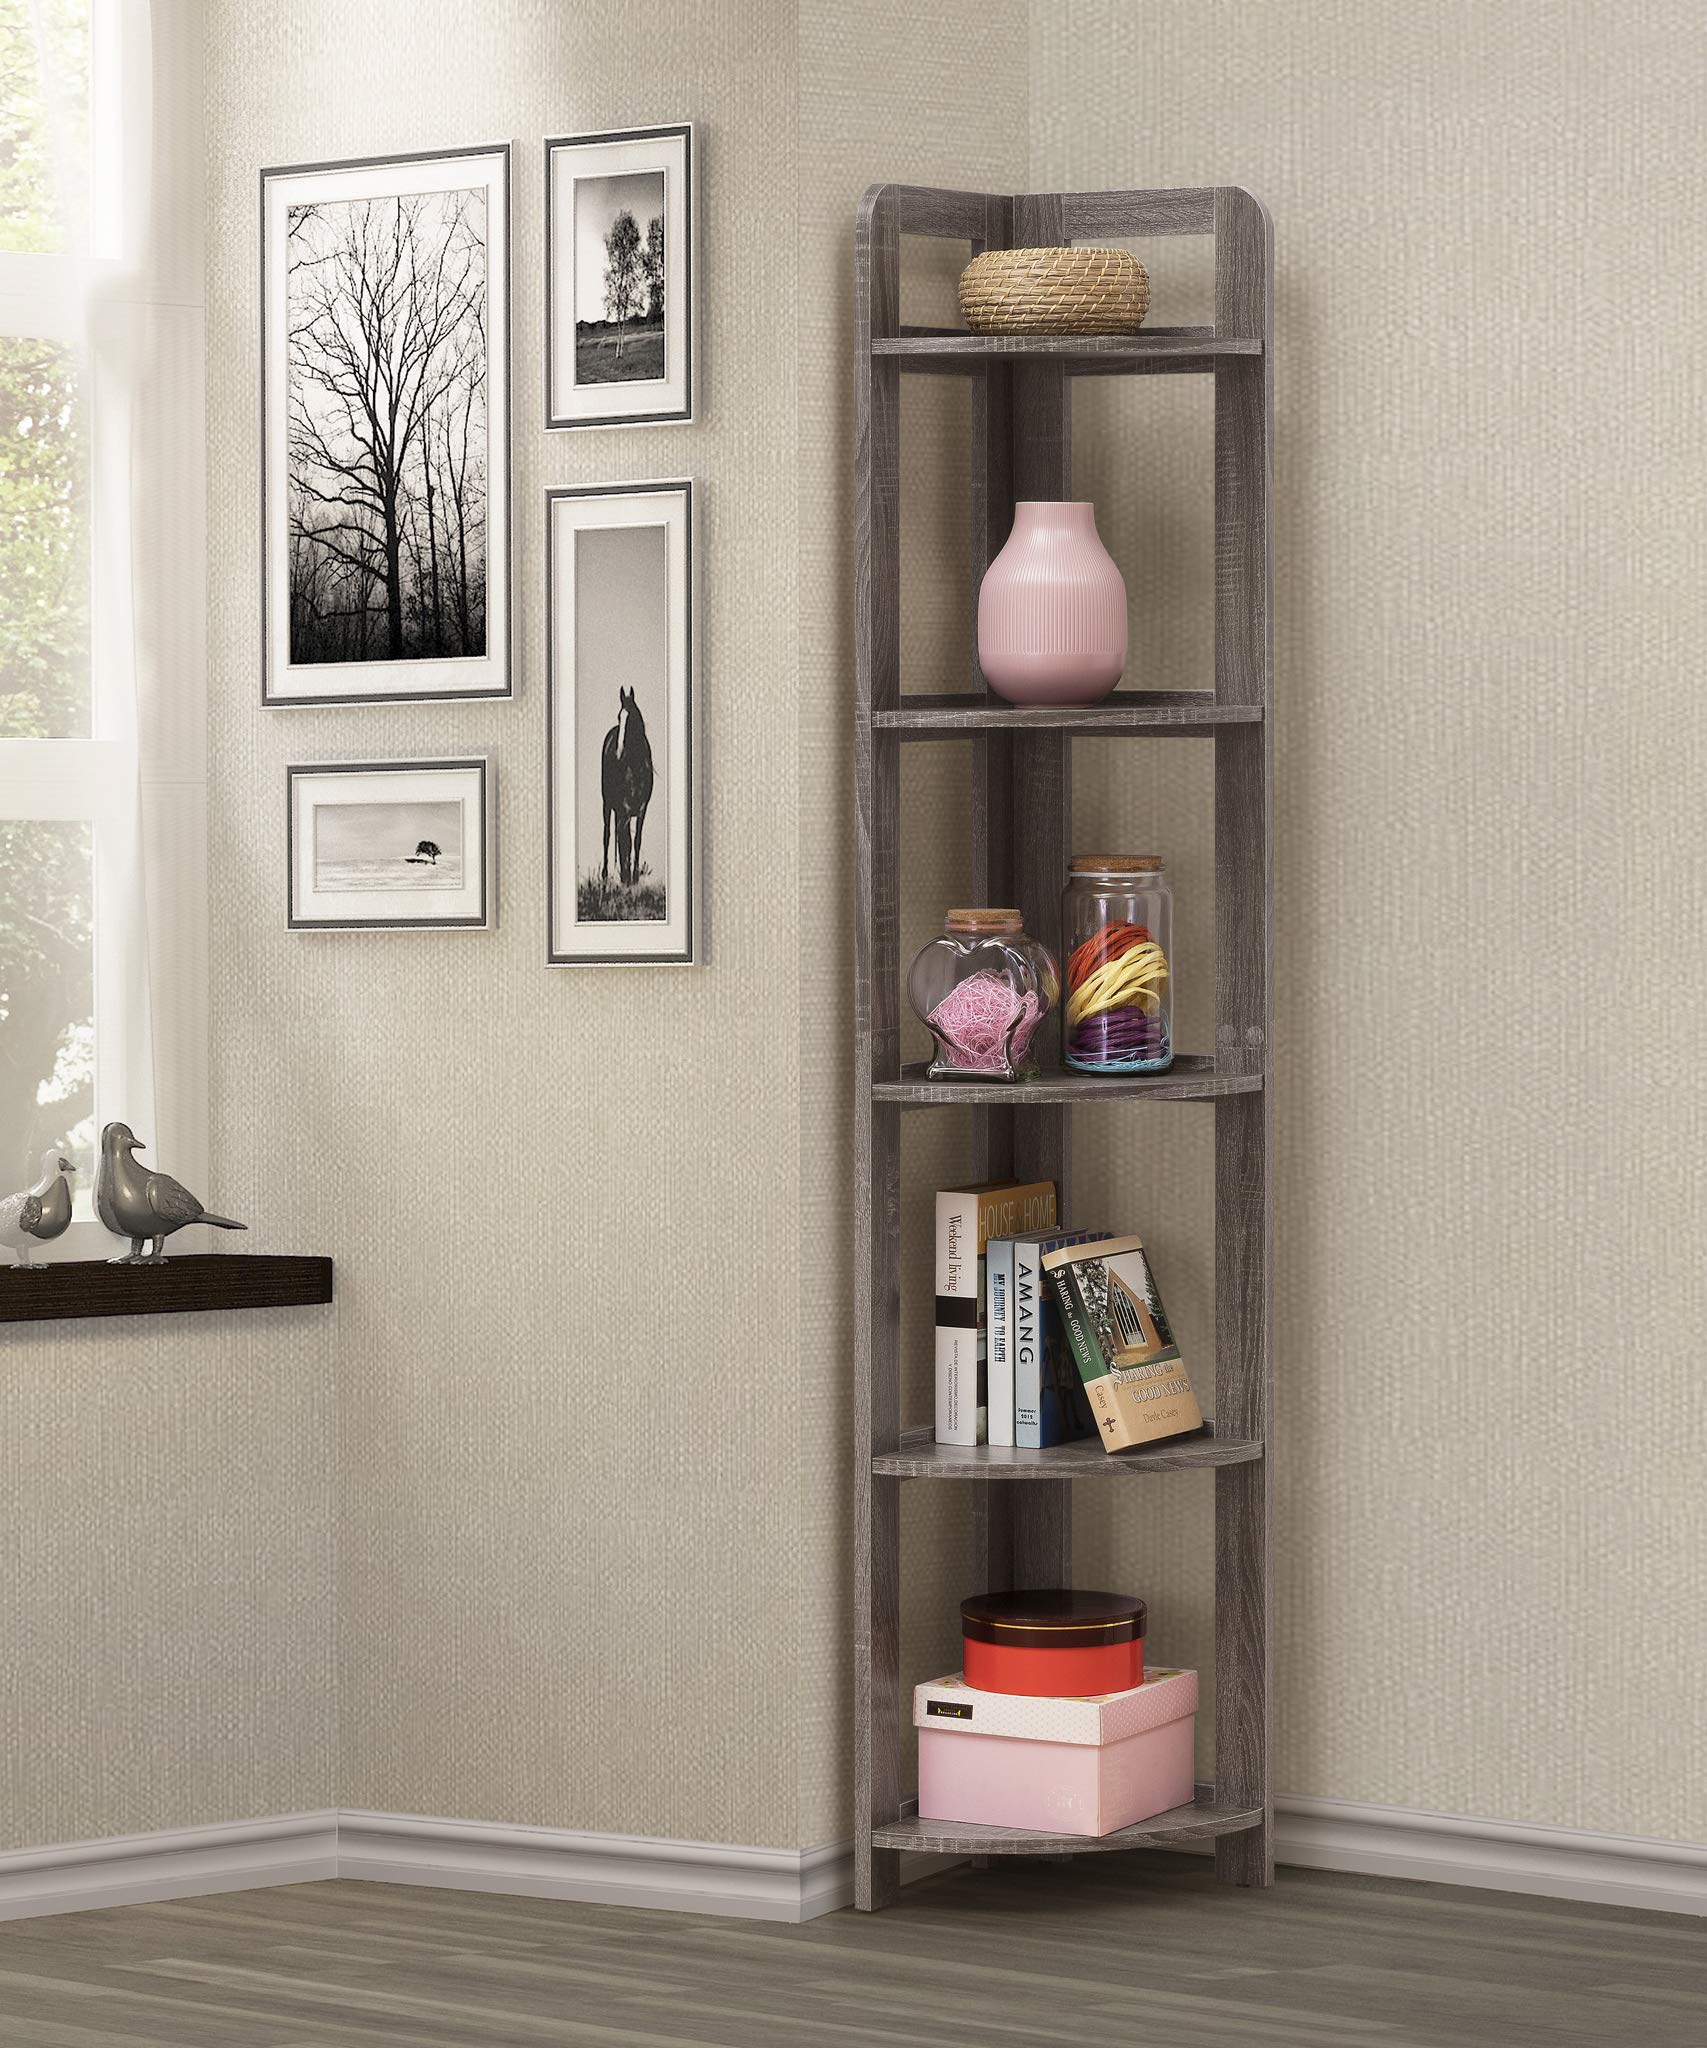 eHomeProducts Weathered Grey Finish 5-Tier Wood Wall Corner Bookshelf Bookcase Accent Etagere by eHomeProducts